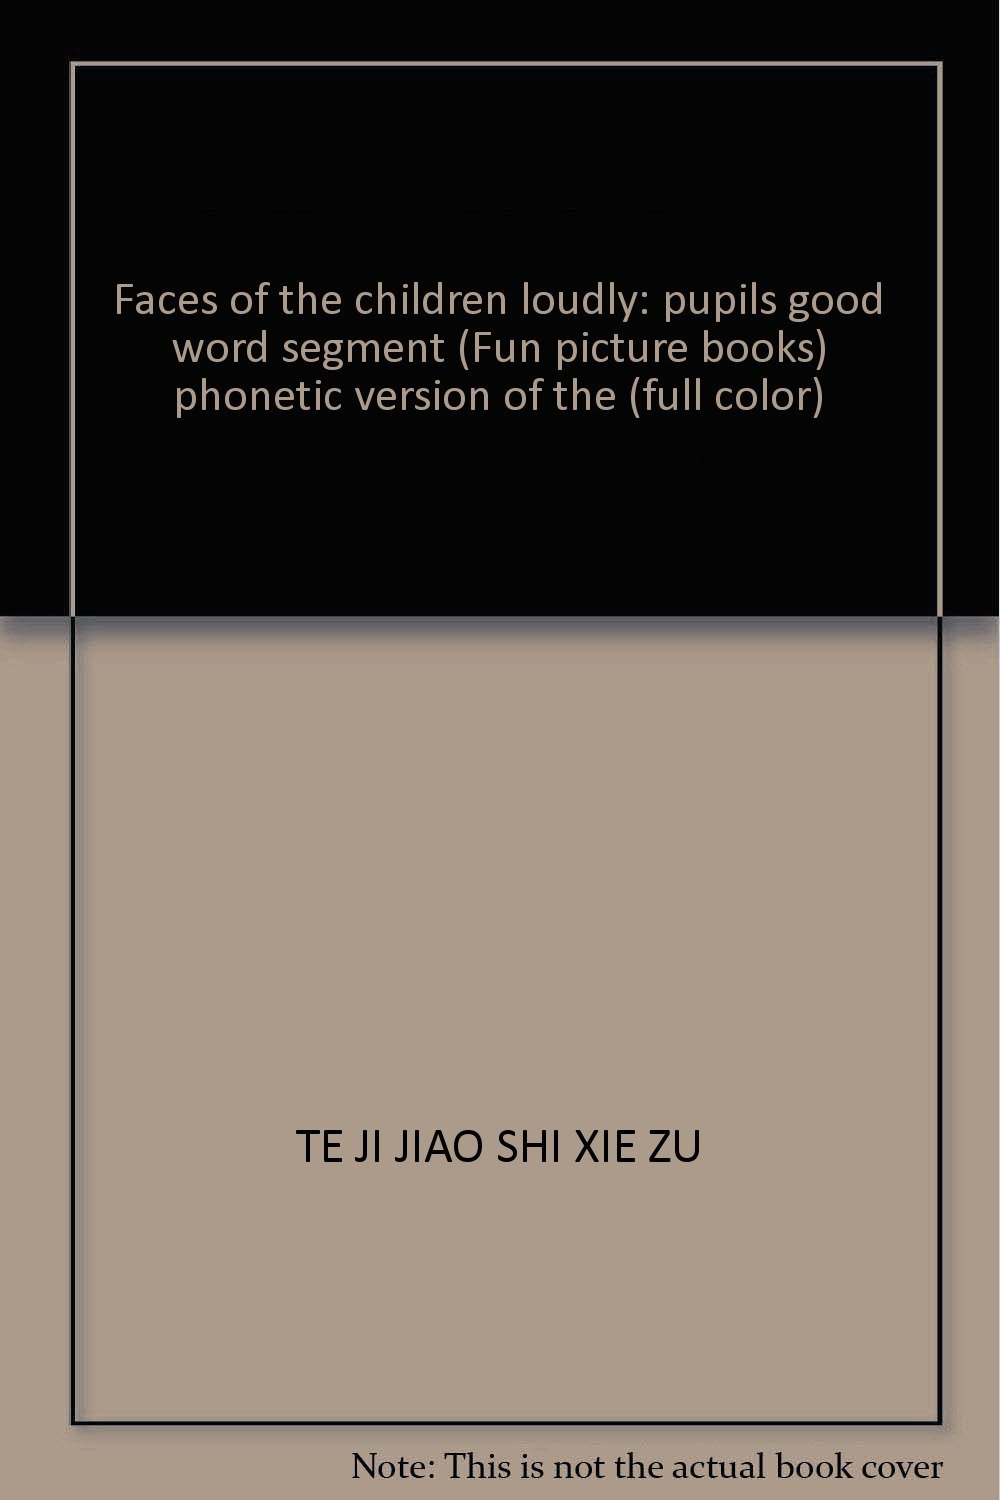 Download Faces of the children loudly: pupils good word segment (Fun picture books) phonetic version of the (full color) ebook